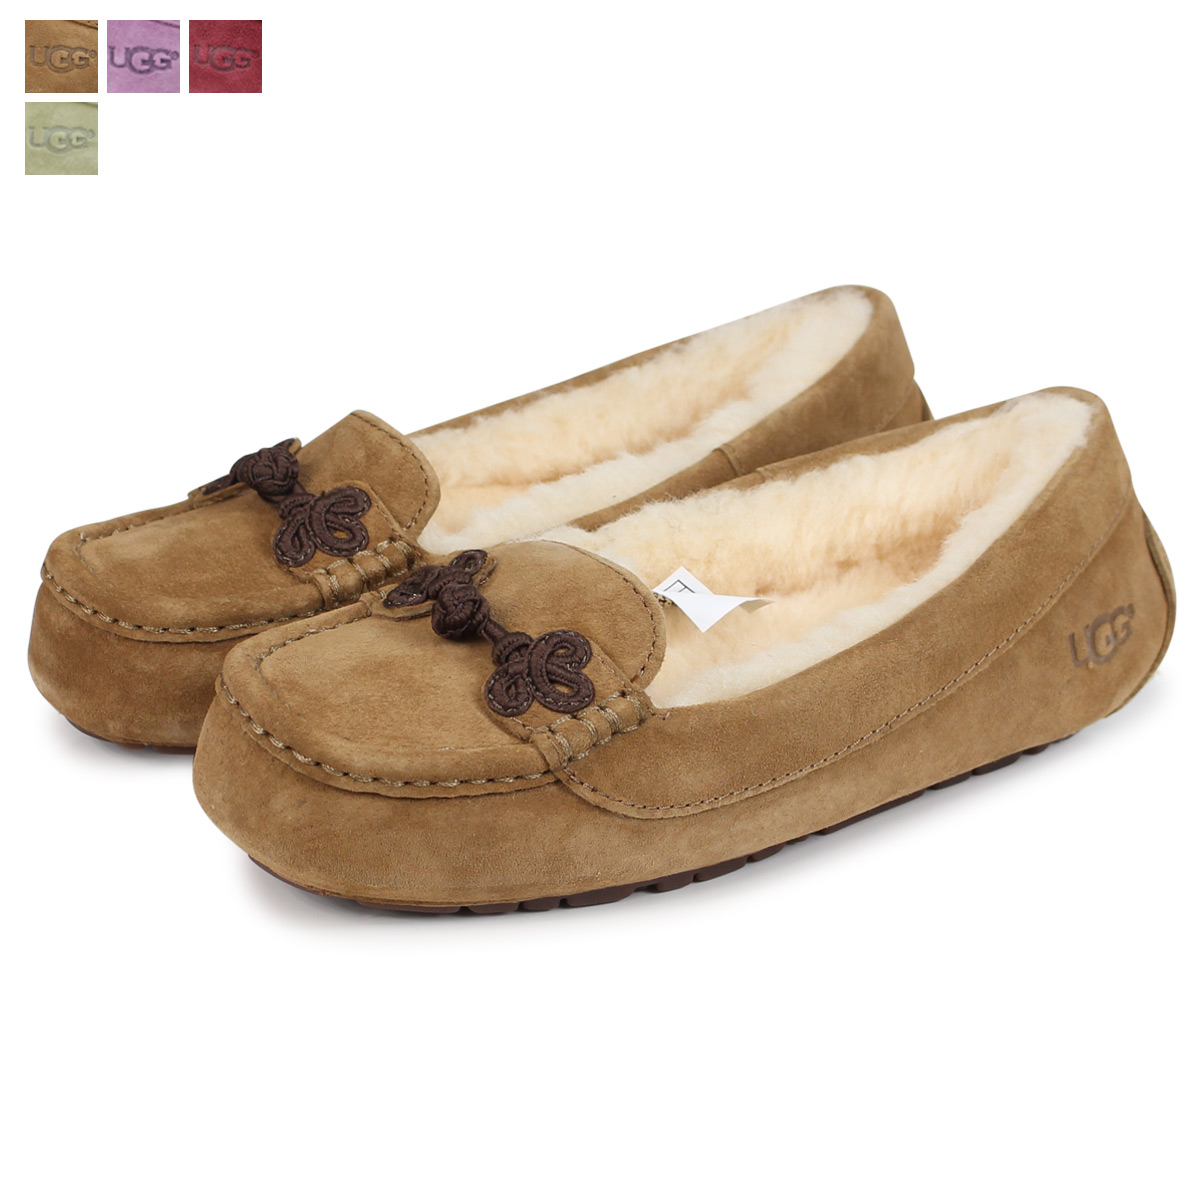 49f176701d8 アグ UGG liver Kashin mouton slip-on shoes WOMENS SUKI 1009276 sheepskin  Lady's